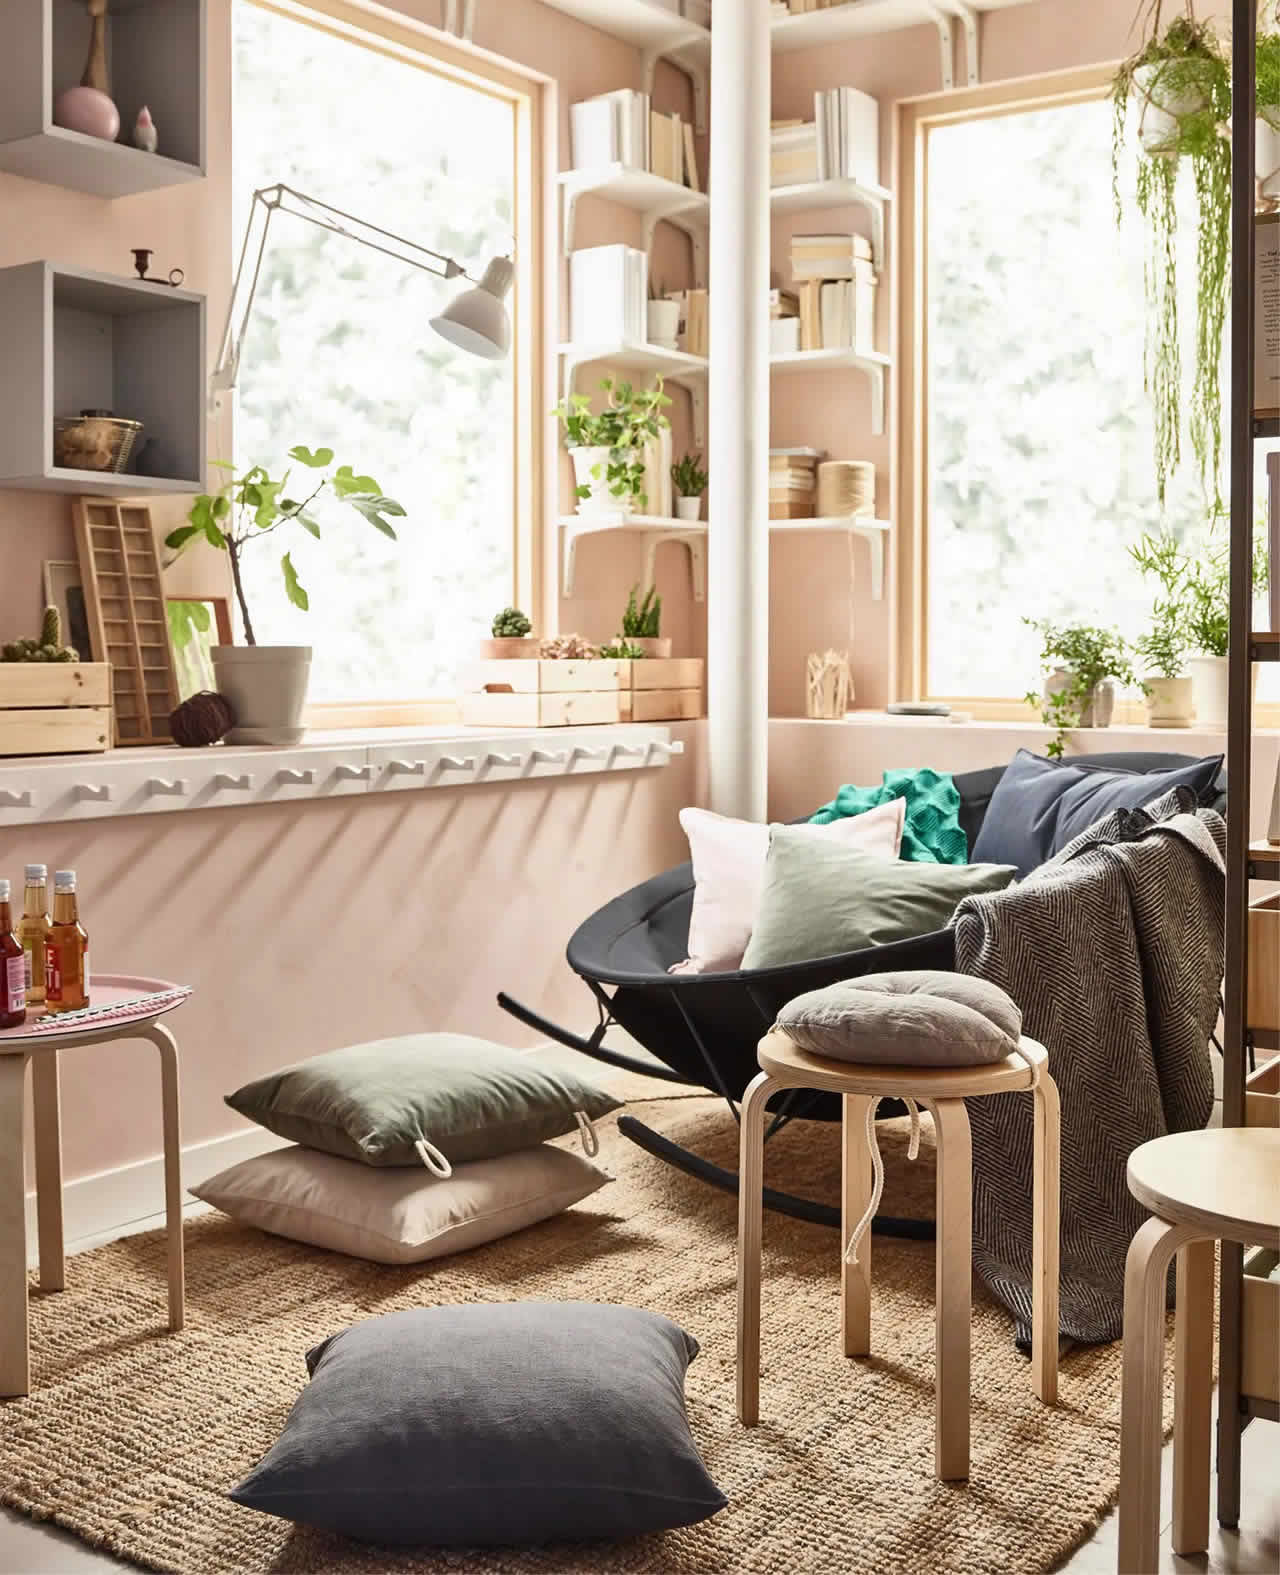 IKEA Ideas- How to get a stress-free living room